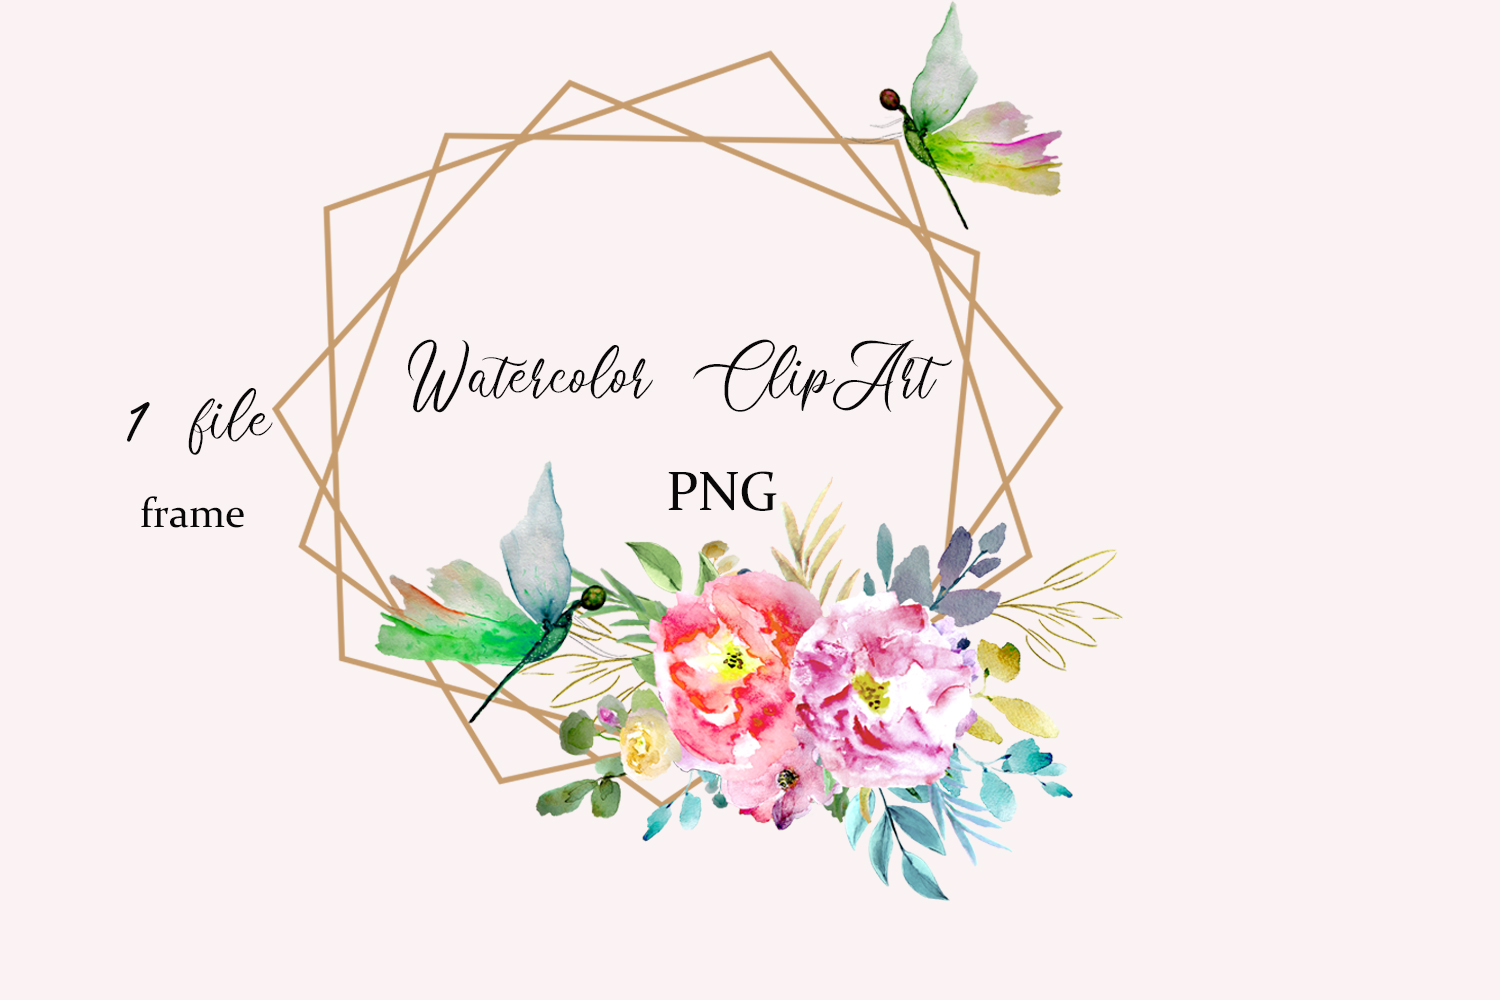 Watercolor Floral Frame ClipArt.